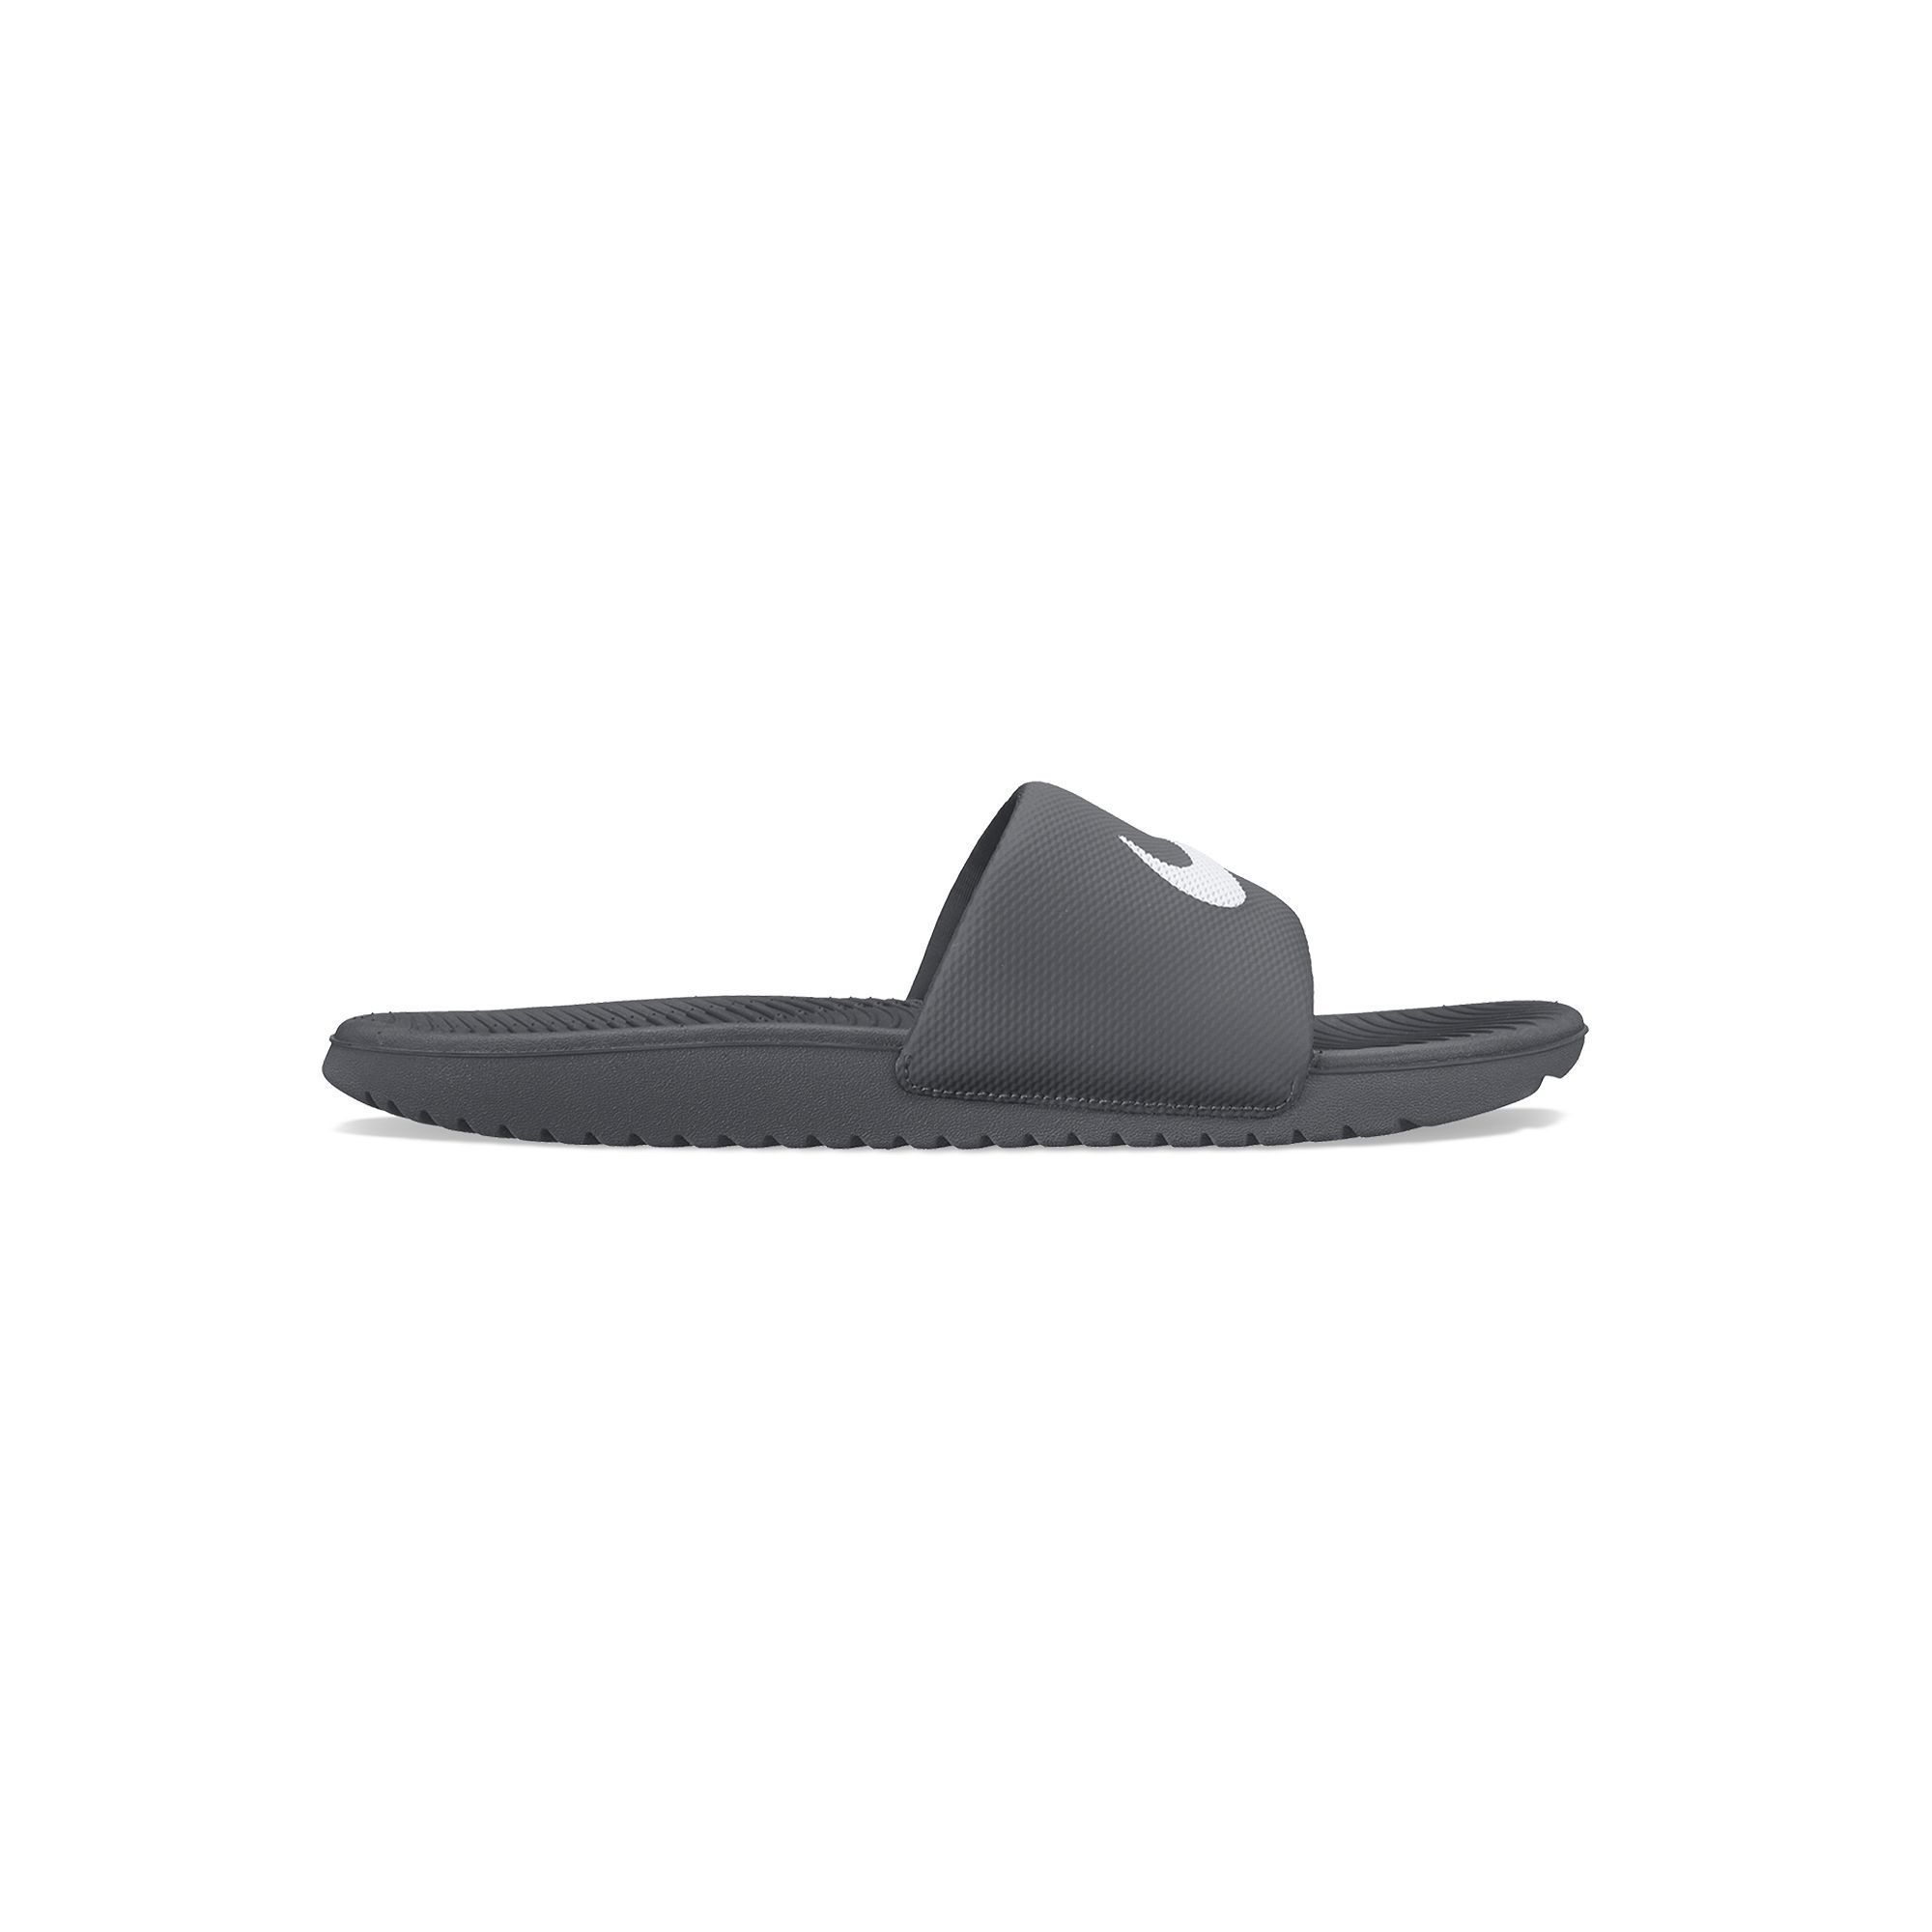 5577951ba399 Nike Kawa Men s Slide Sandals